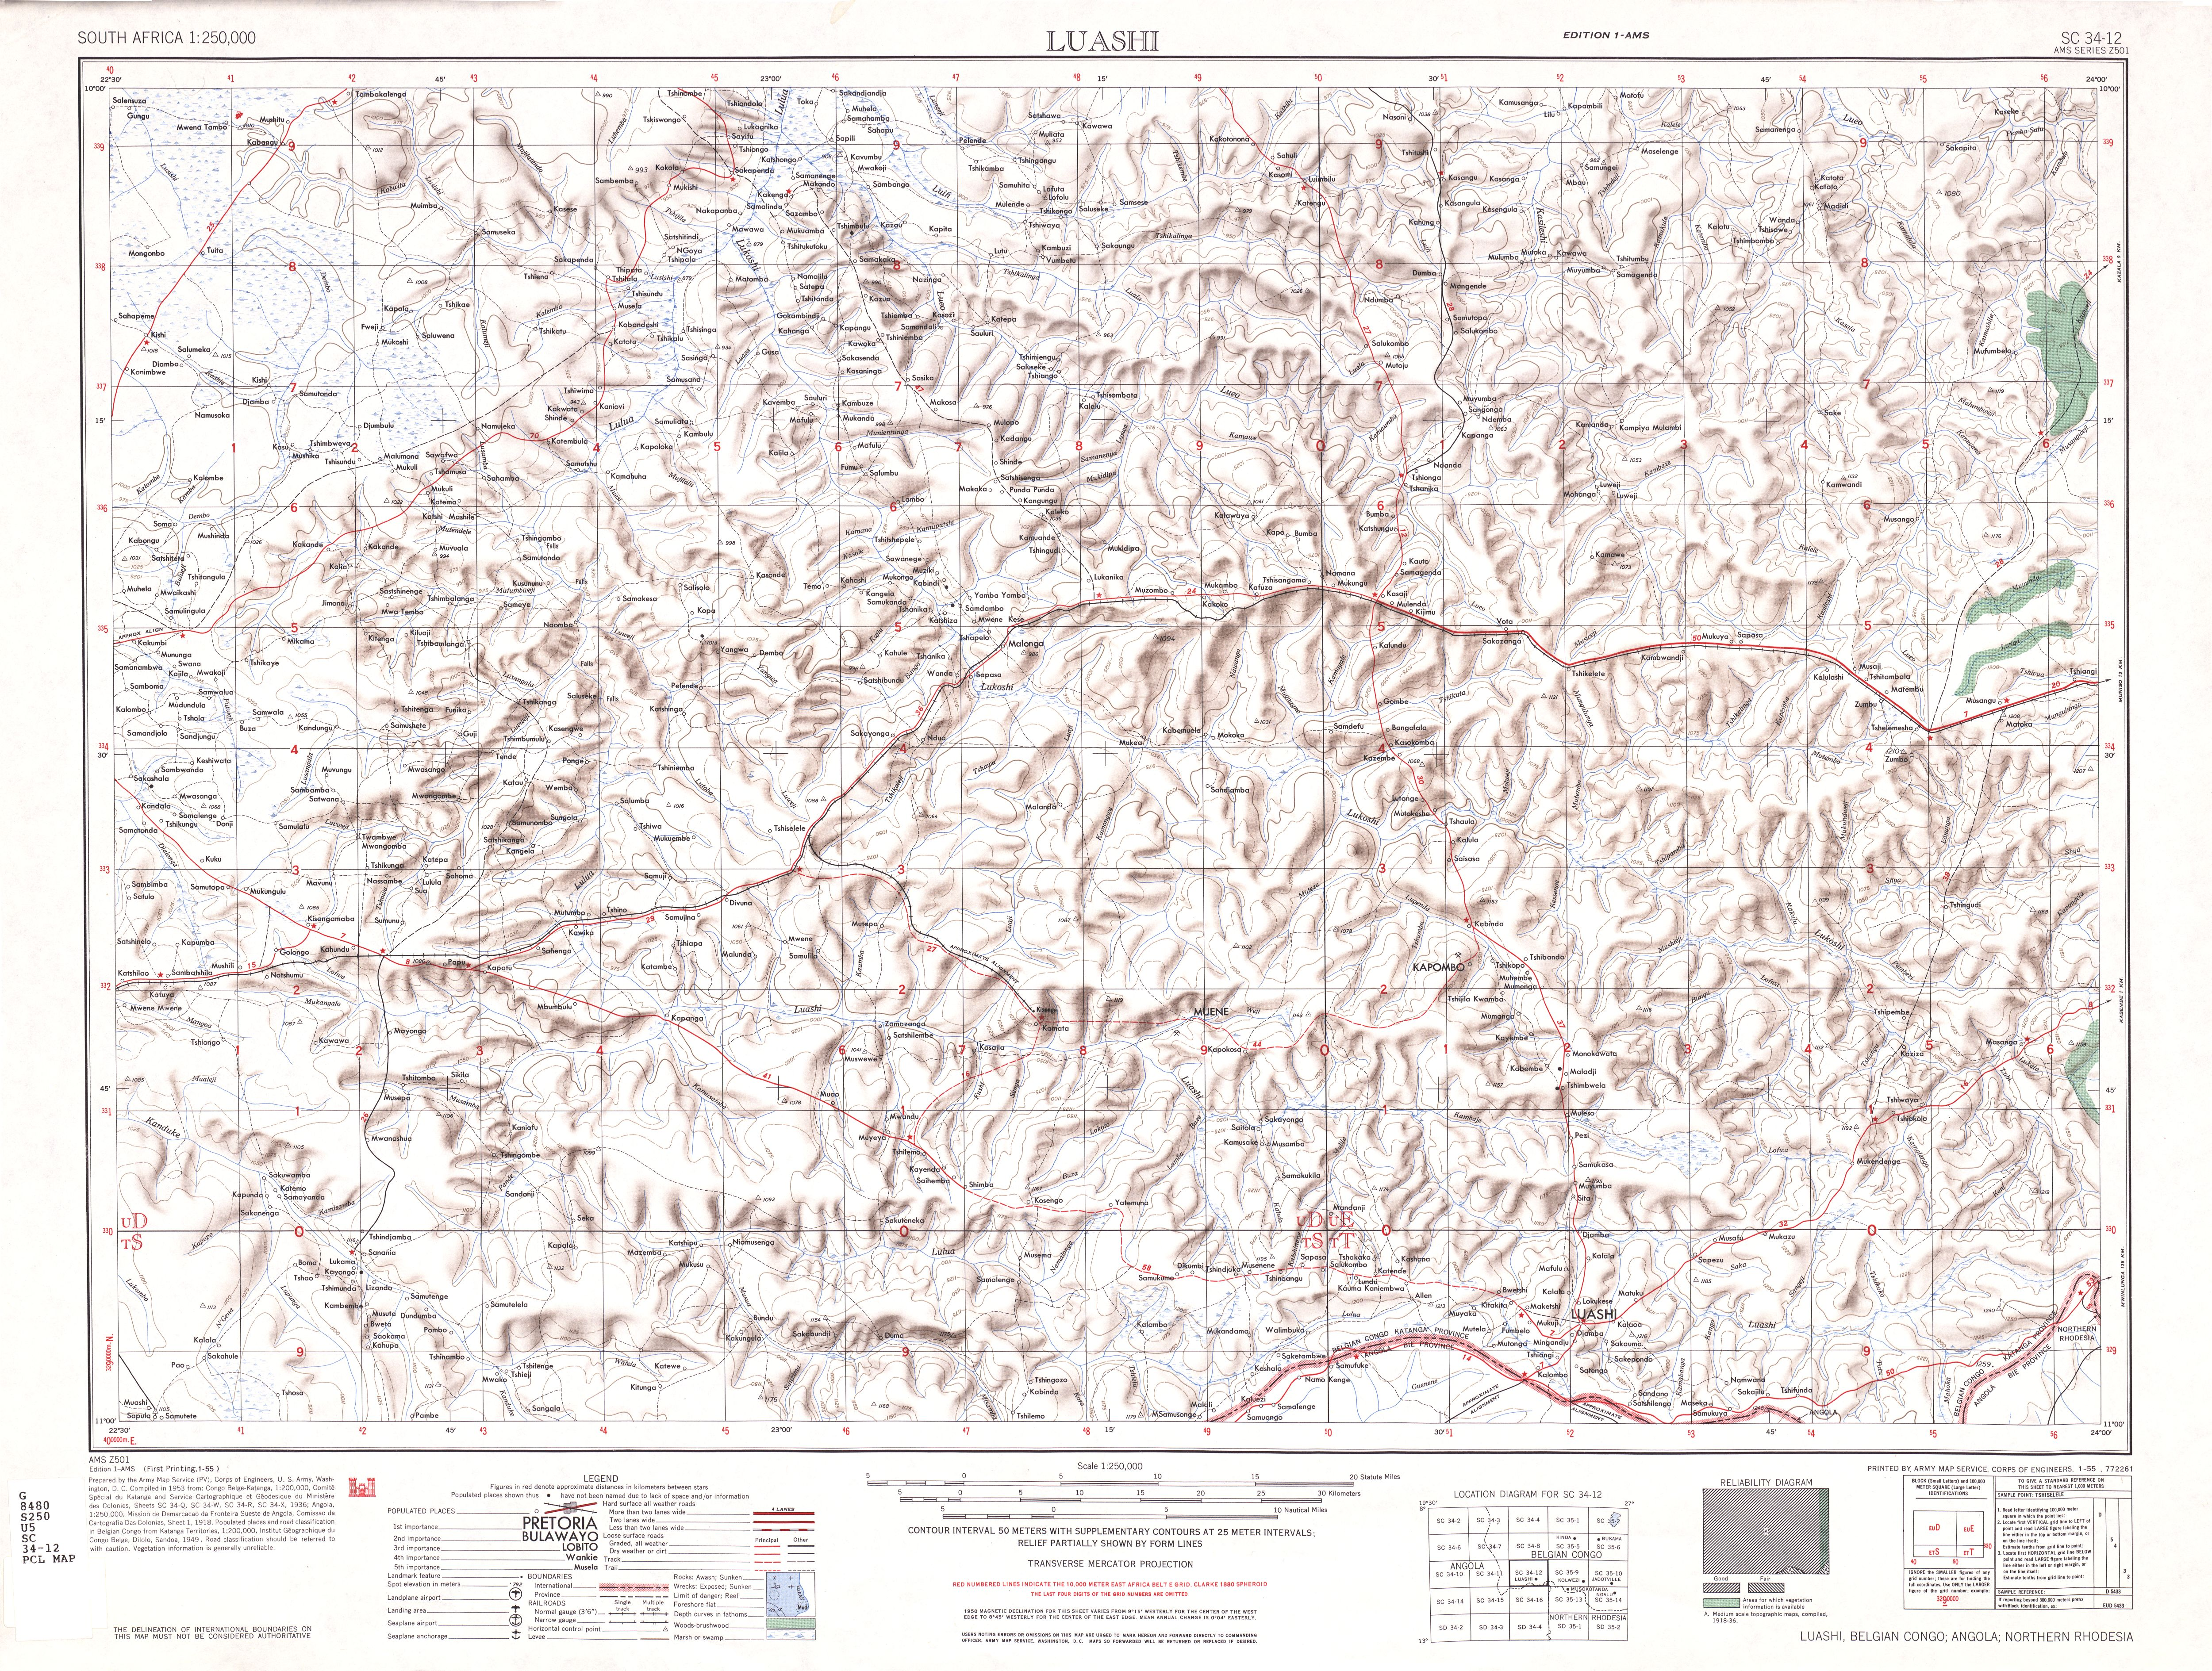 Luashi Topographic Map Sheet, Southern Africa 1954